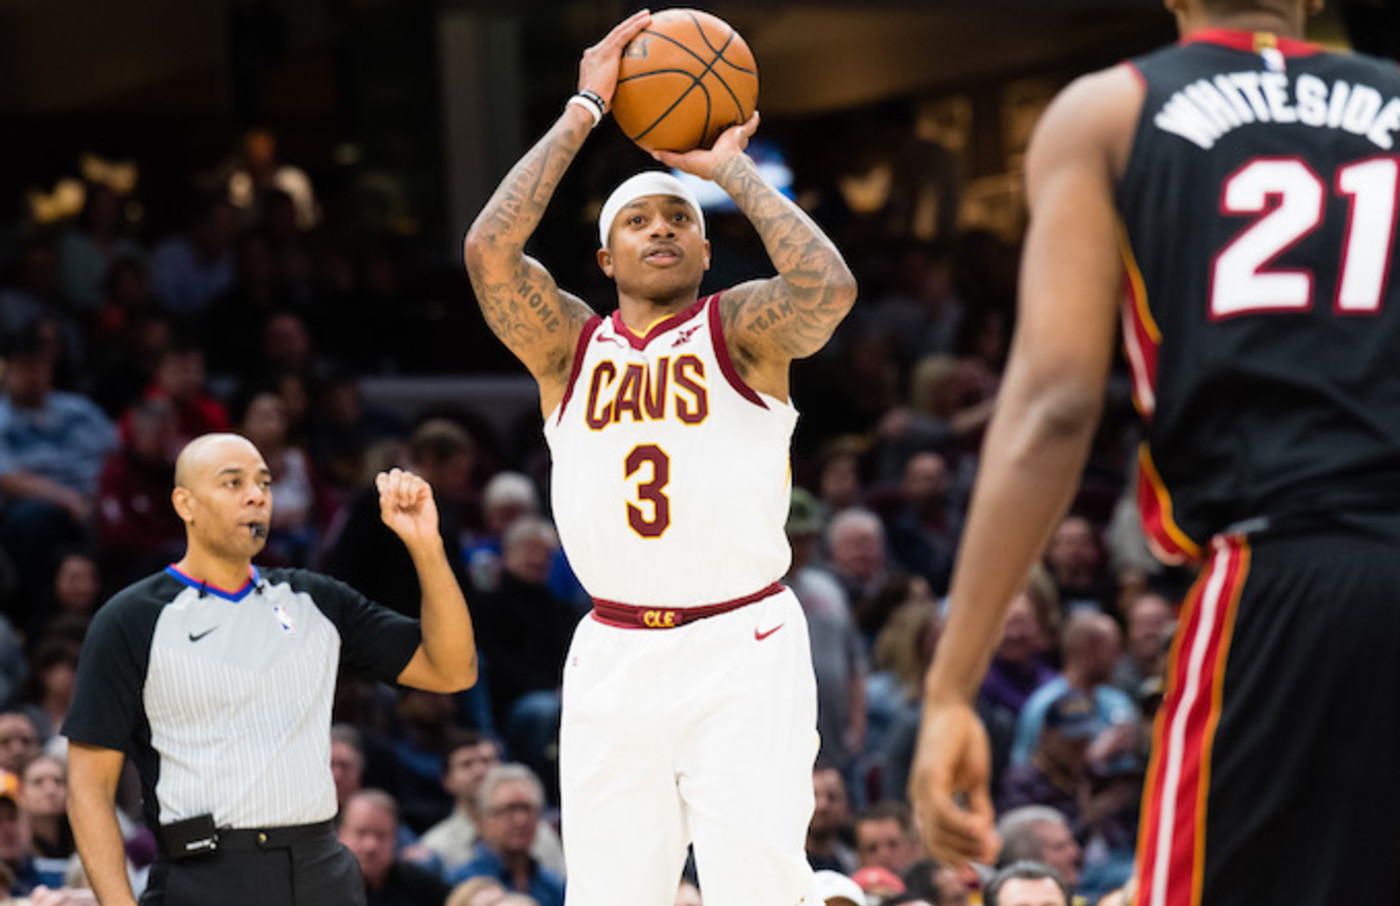 Isaiah Thomas shooting against the Heat.